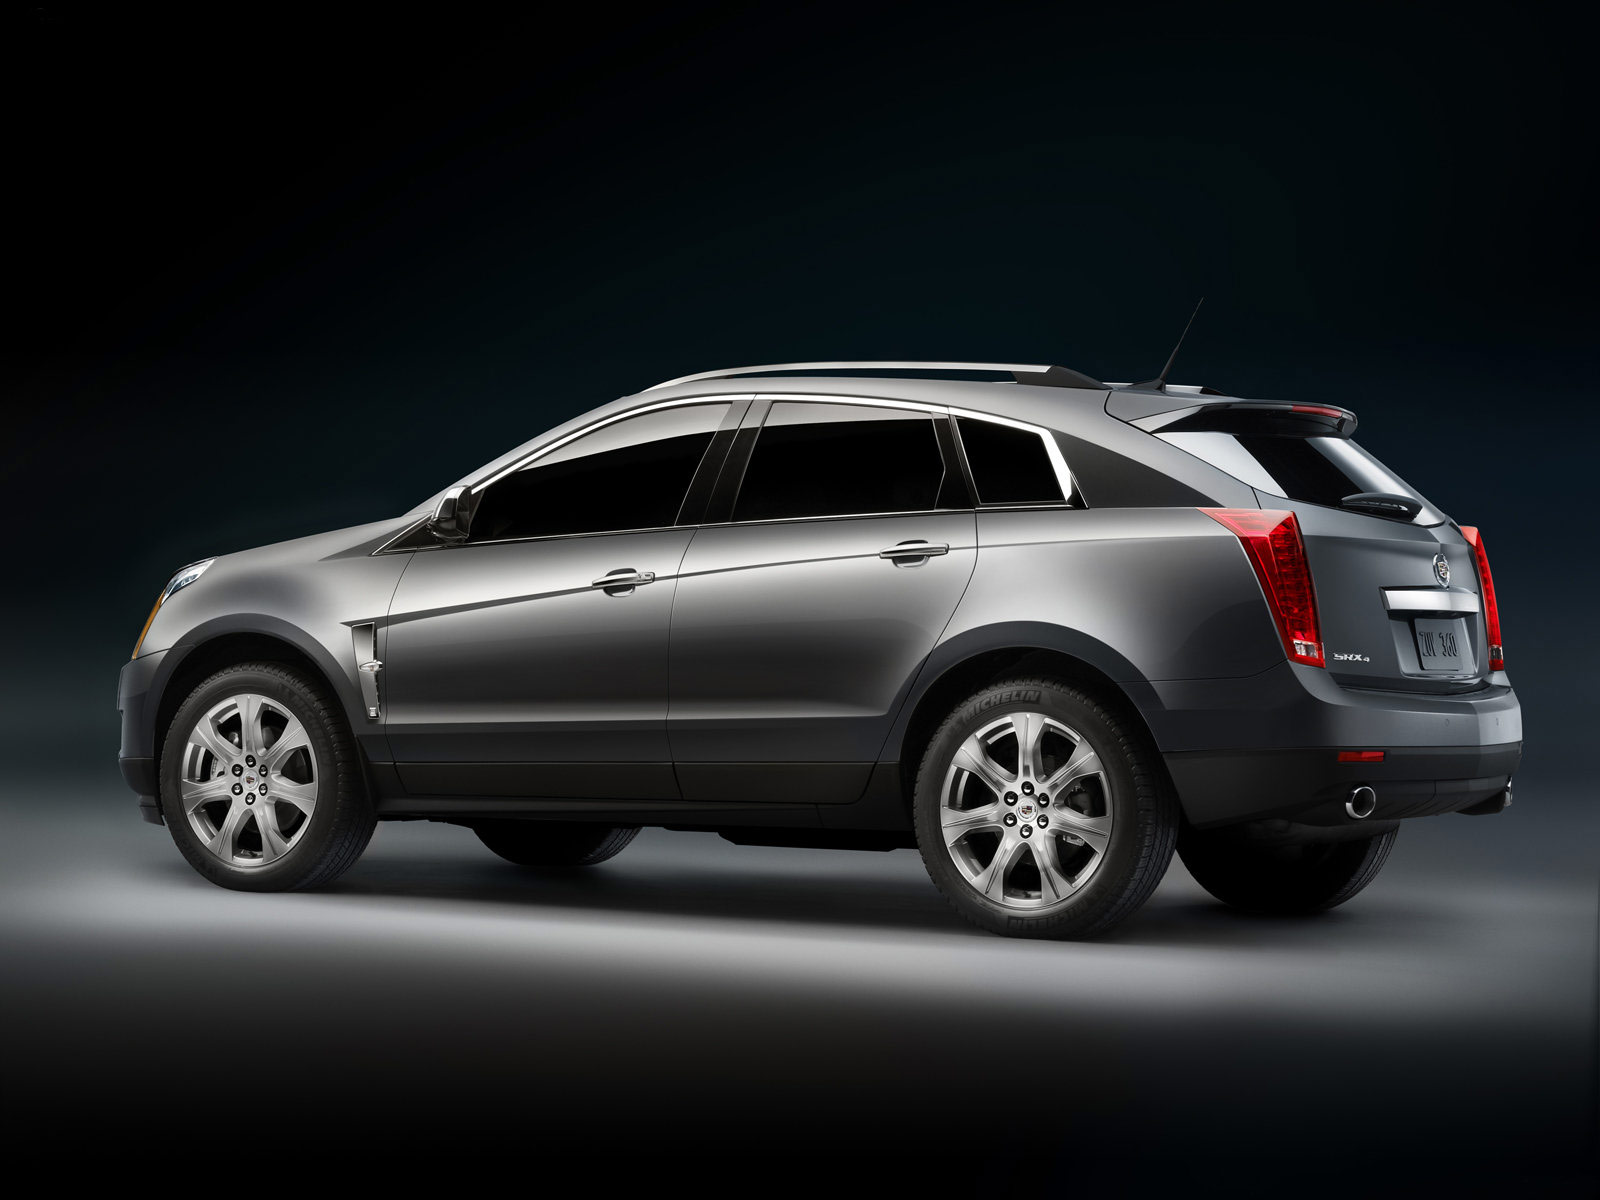 2010 cadillac srx car wallpapers accident lawyers info. Black Bedroom Furniture Sets. Home Design Ideas